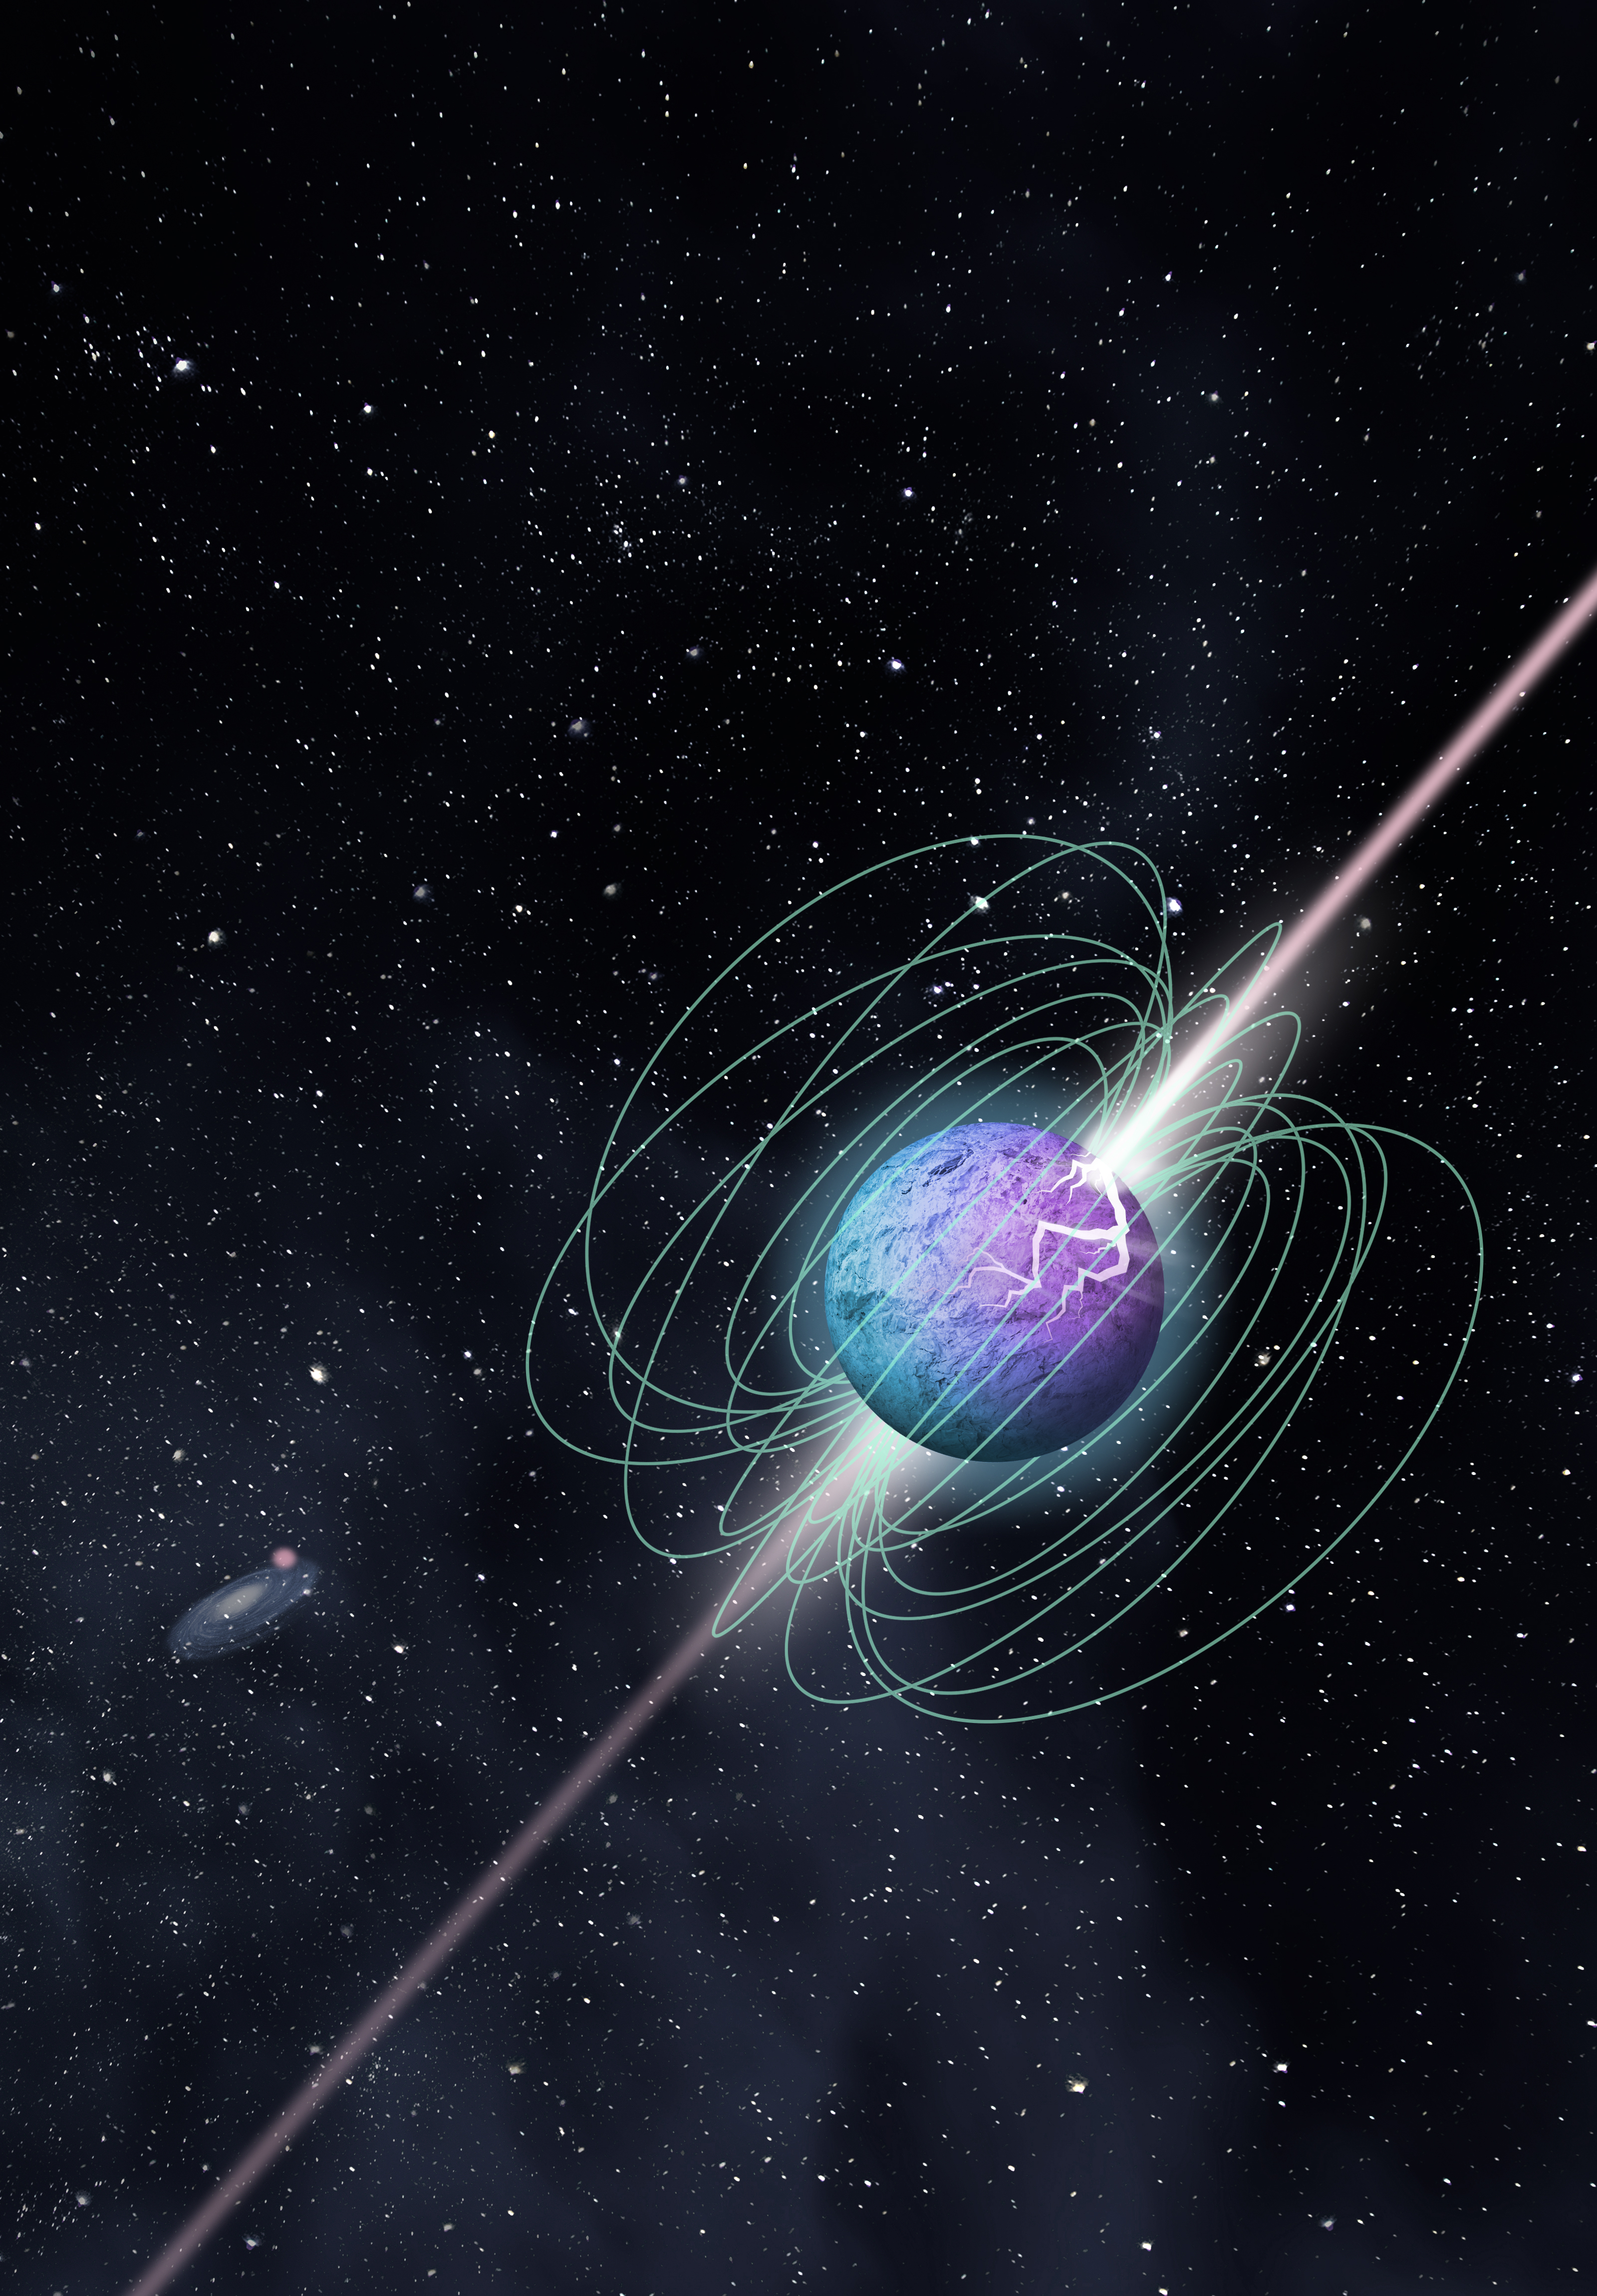 Detection of a radio burst in Milky Way could resolve origins of mysterious phenomenon